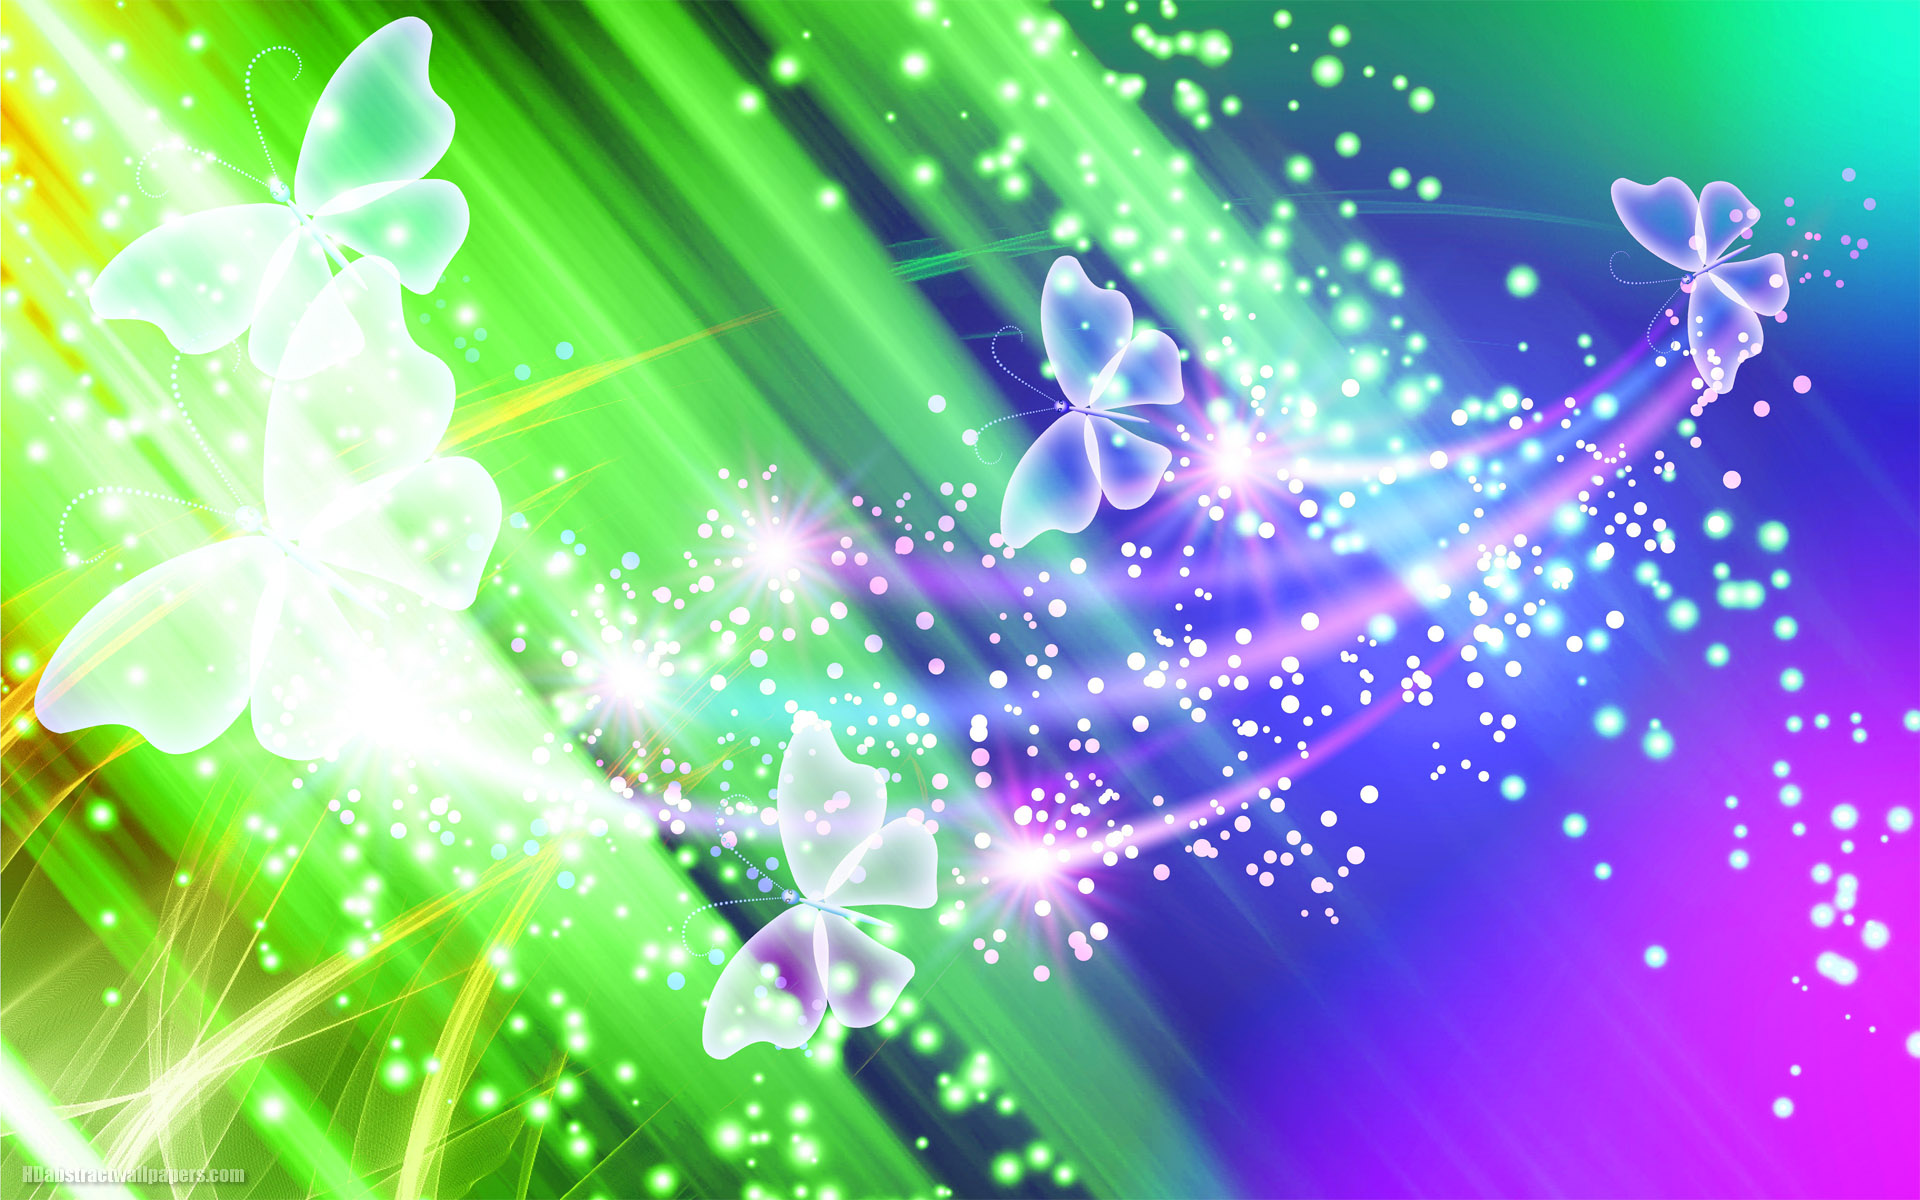 Colorful abstract wallpaper with butterflies and lights ...